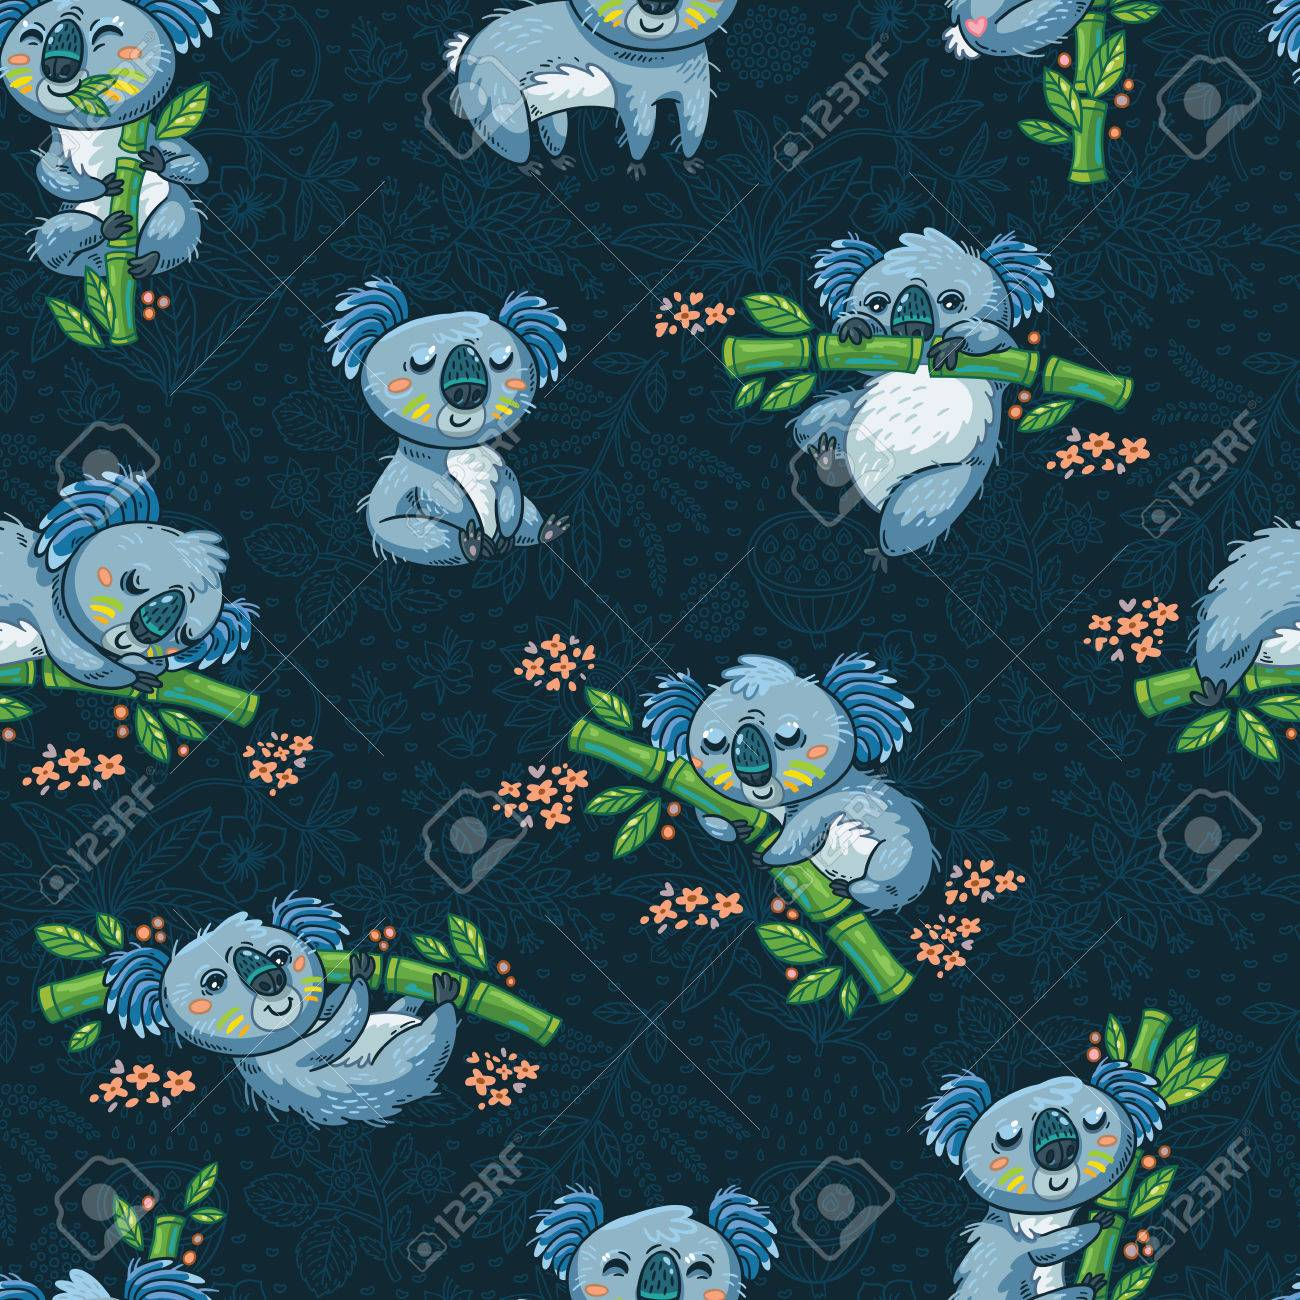 Most Inspiring Wallpaper Koala Cartoon - 55717569-adorable-seamless-pattern-with-cute-koalas-in-cartoon-ideal-for-cards-wallpapers-invitations-party-b  Pic_94322   .jpg